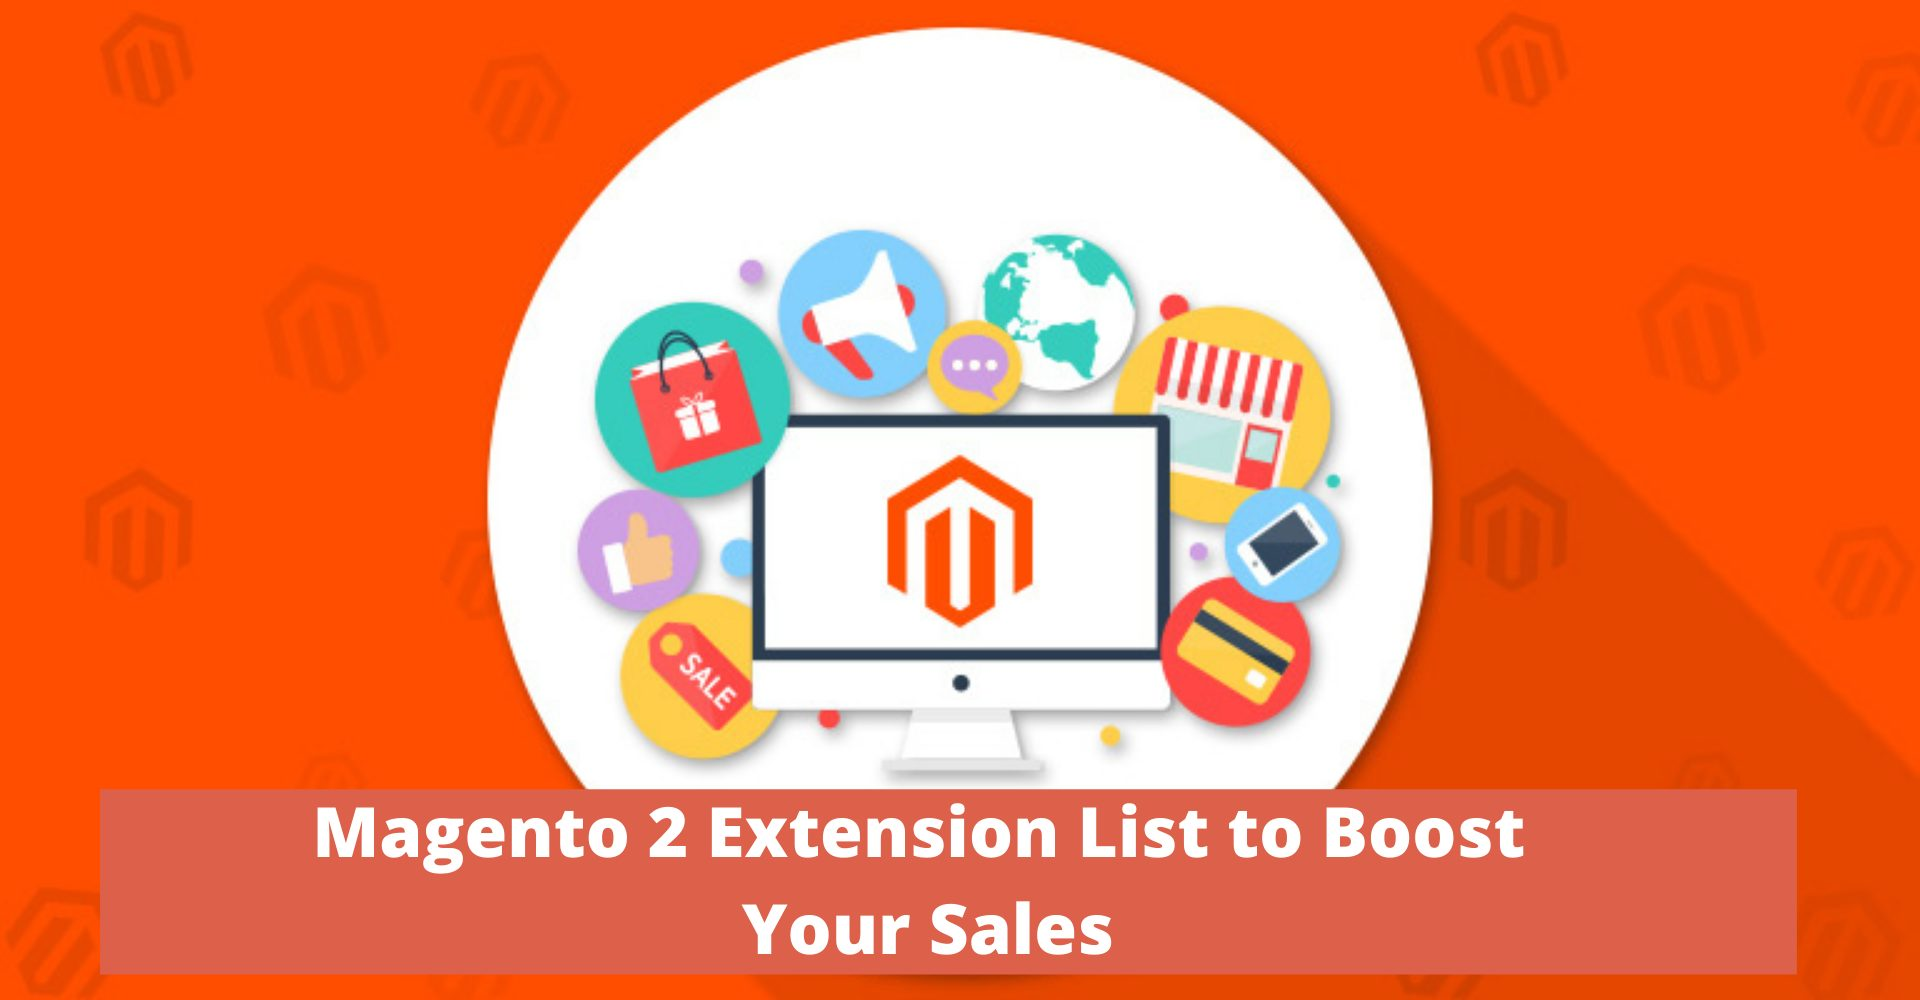 Magento 2 Extension List to Boost Your Sales